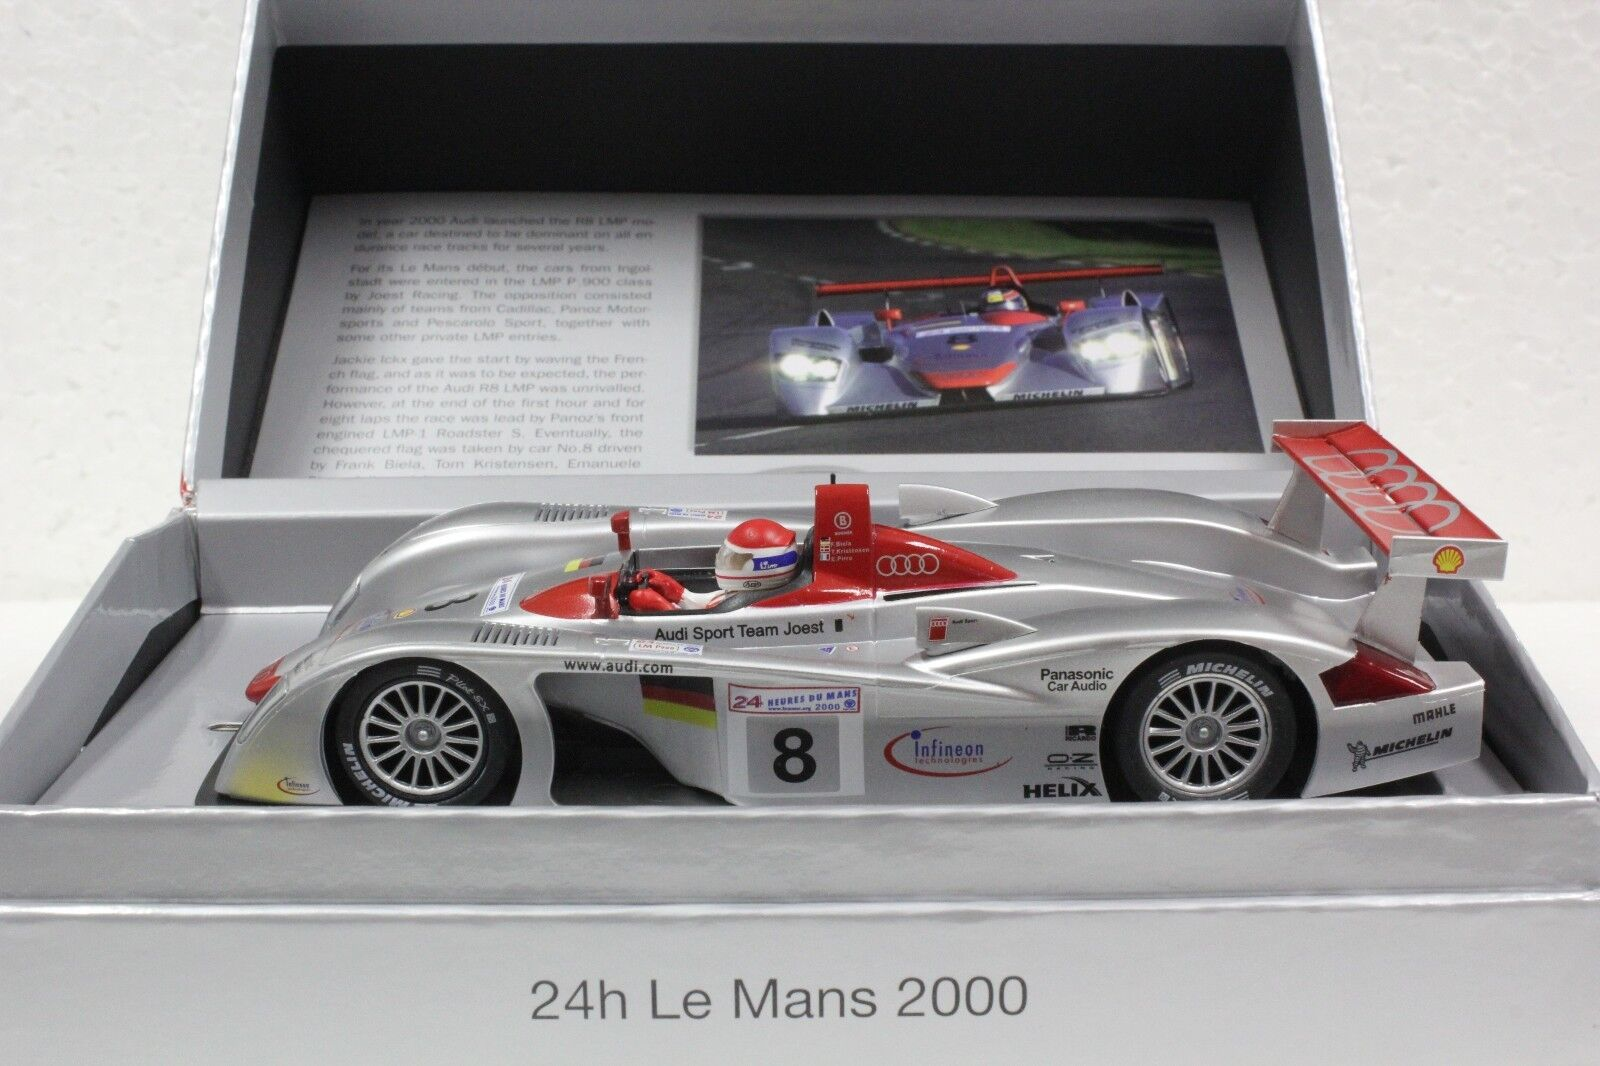 SLOT IT SICW19 AUDI R8 LMP WINNER LE MANS 2000 NEW 1 32 SLOT CAR IN LTD ED BOX